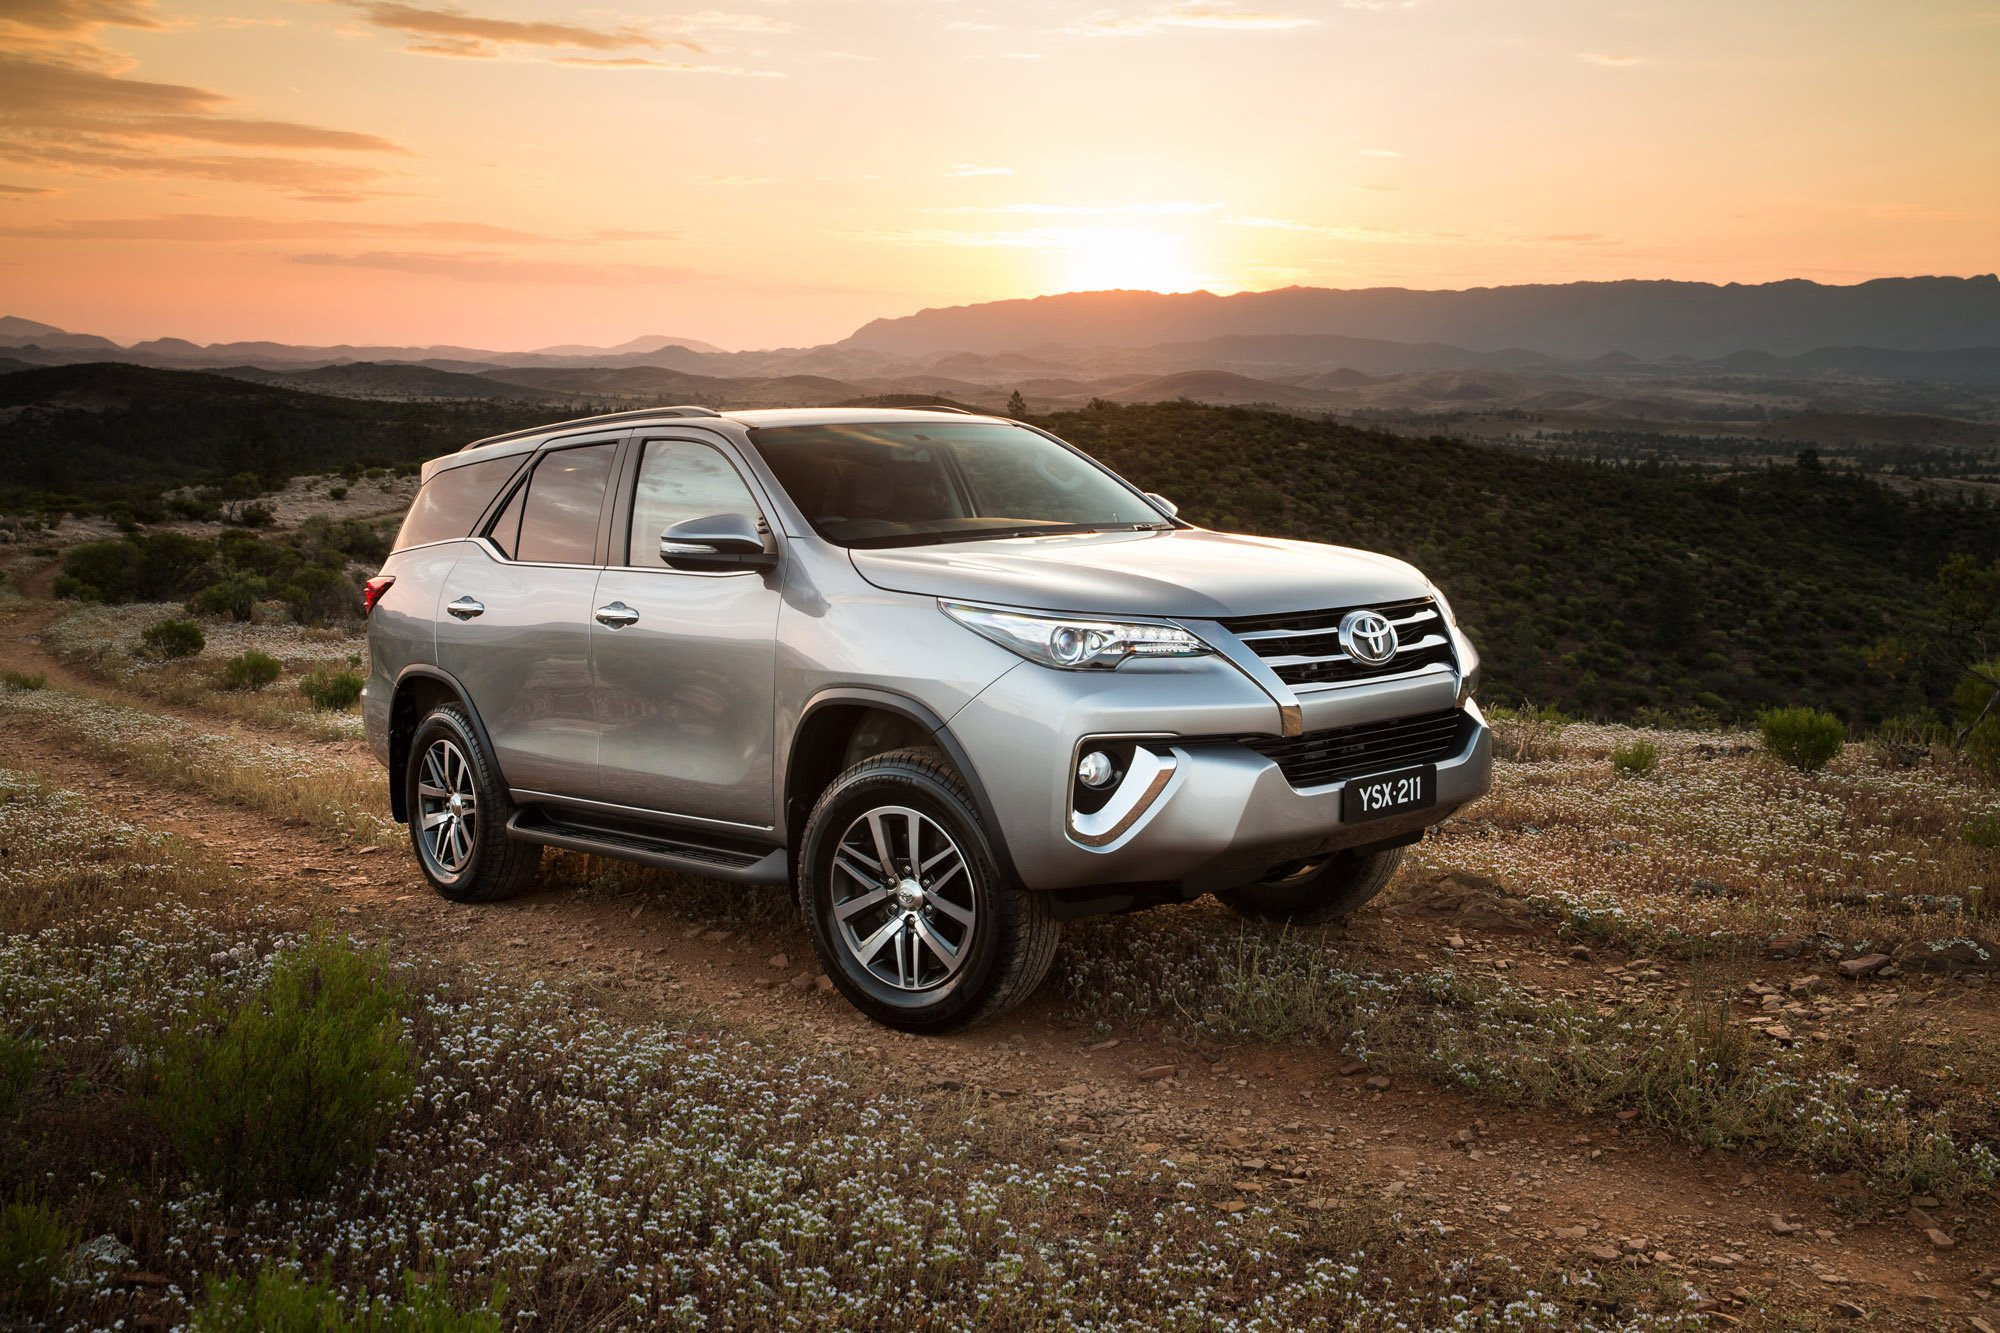 Toyota Fortuner Review - Photos